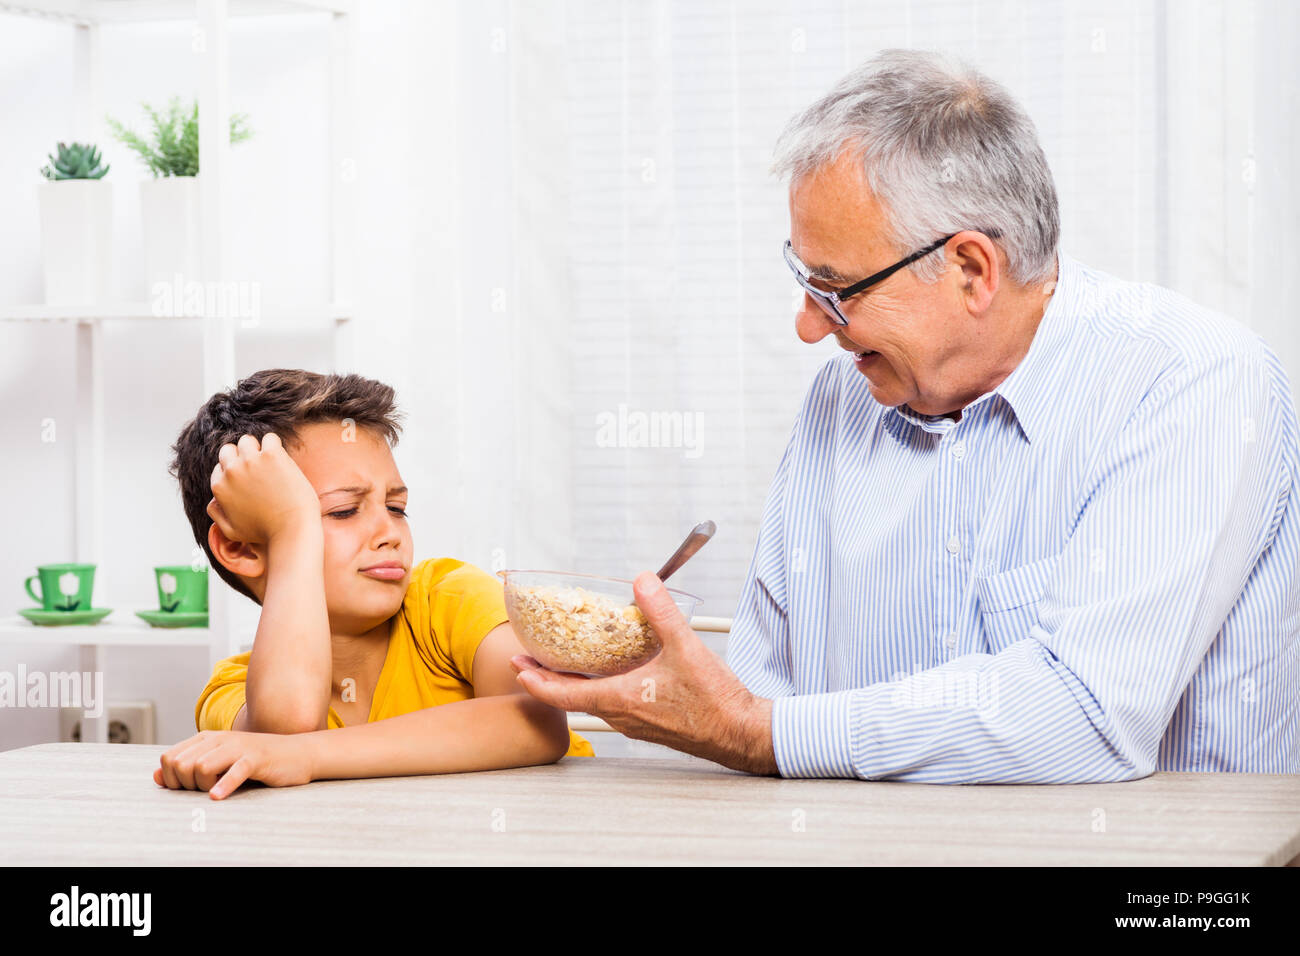 Grandfather is giving oatmeal to his grandson but he refuses to eat it. Stock Photo